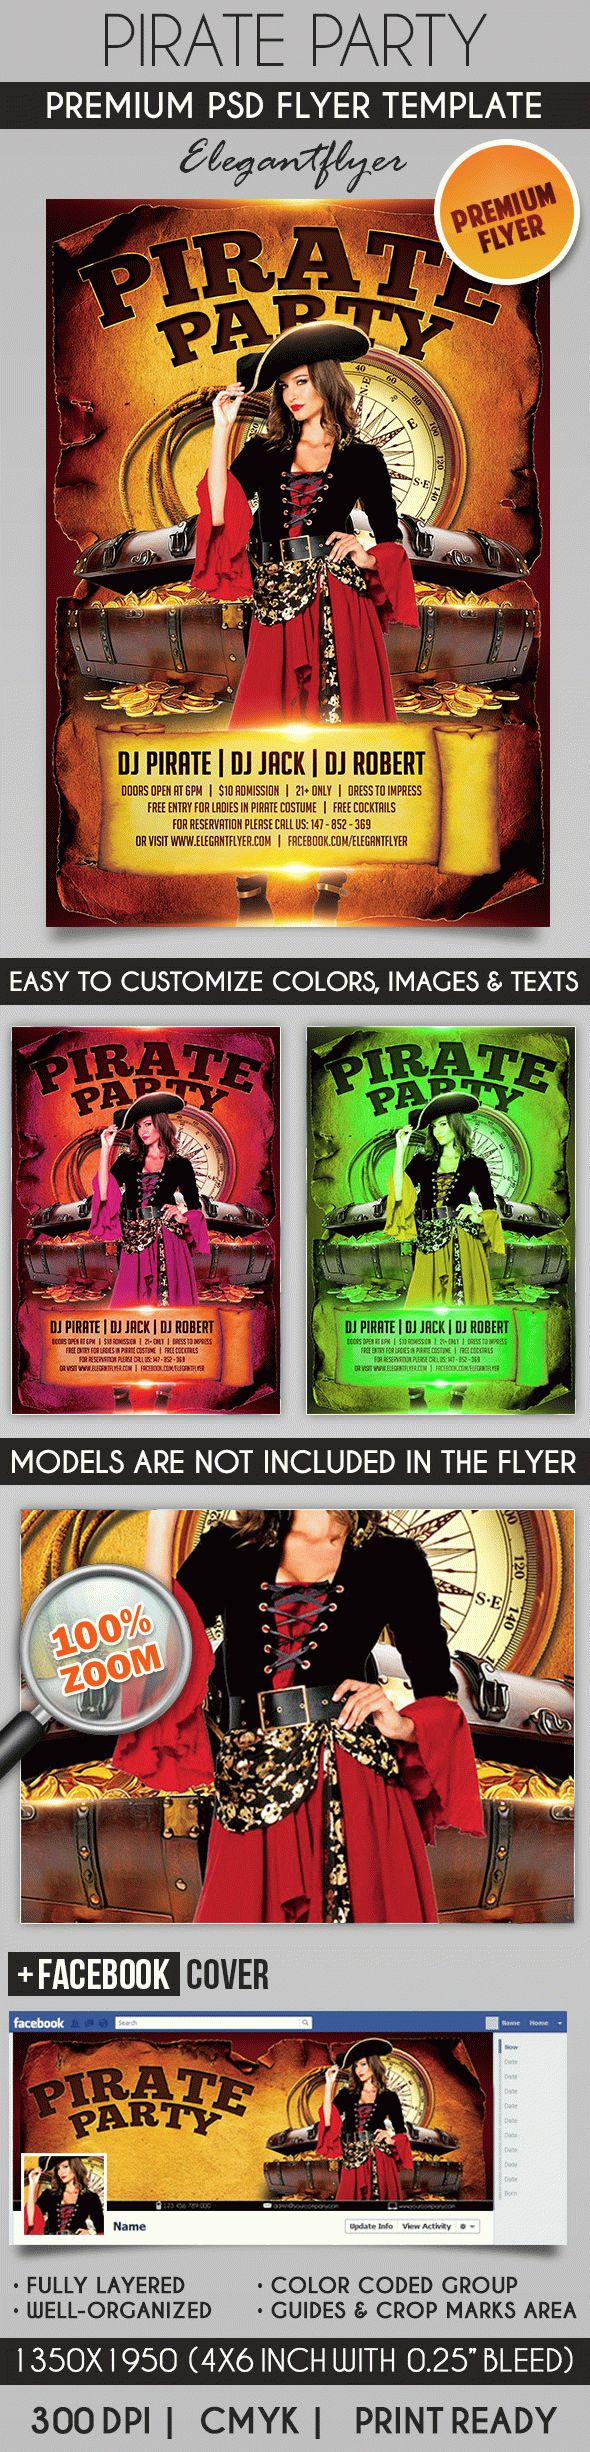 Invitations to a Pirate Party – by ElegantFlyer